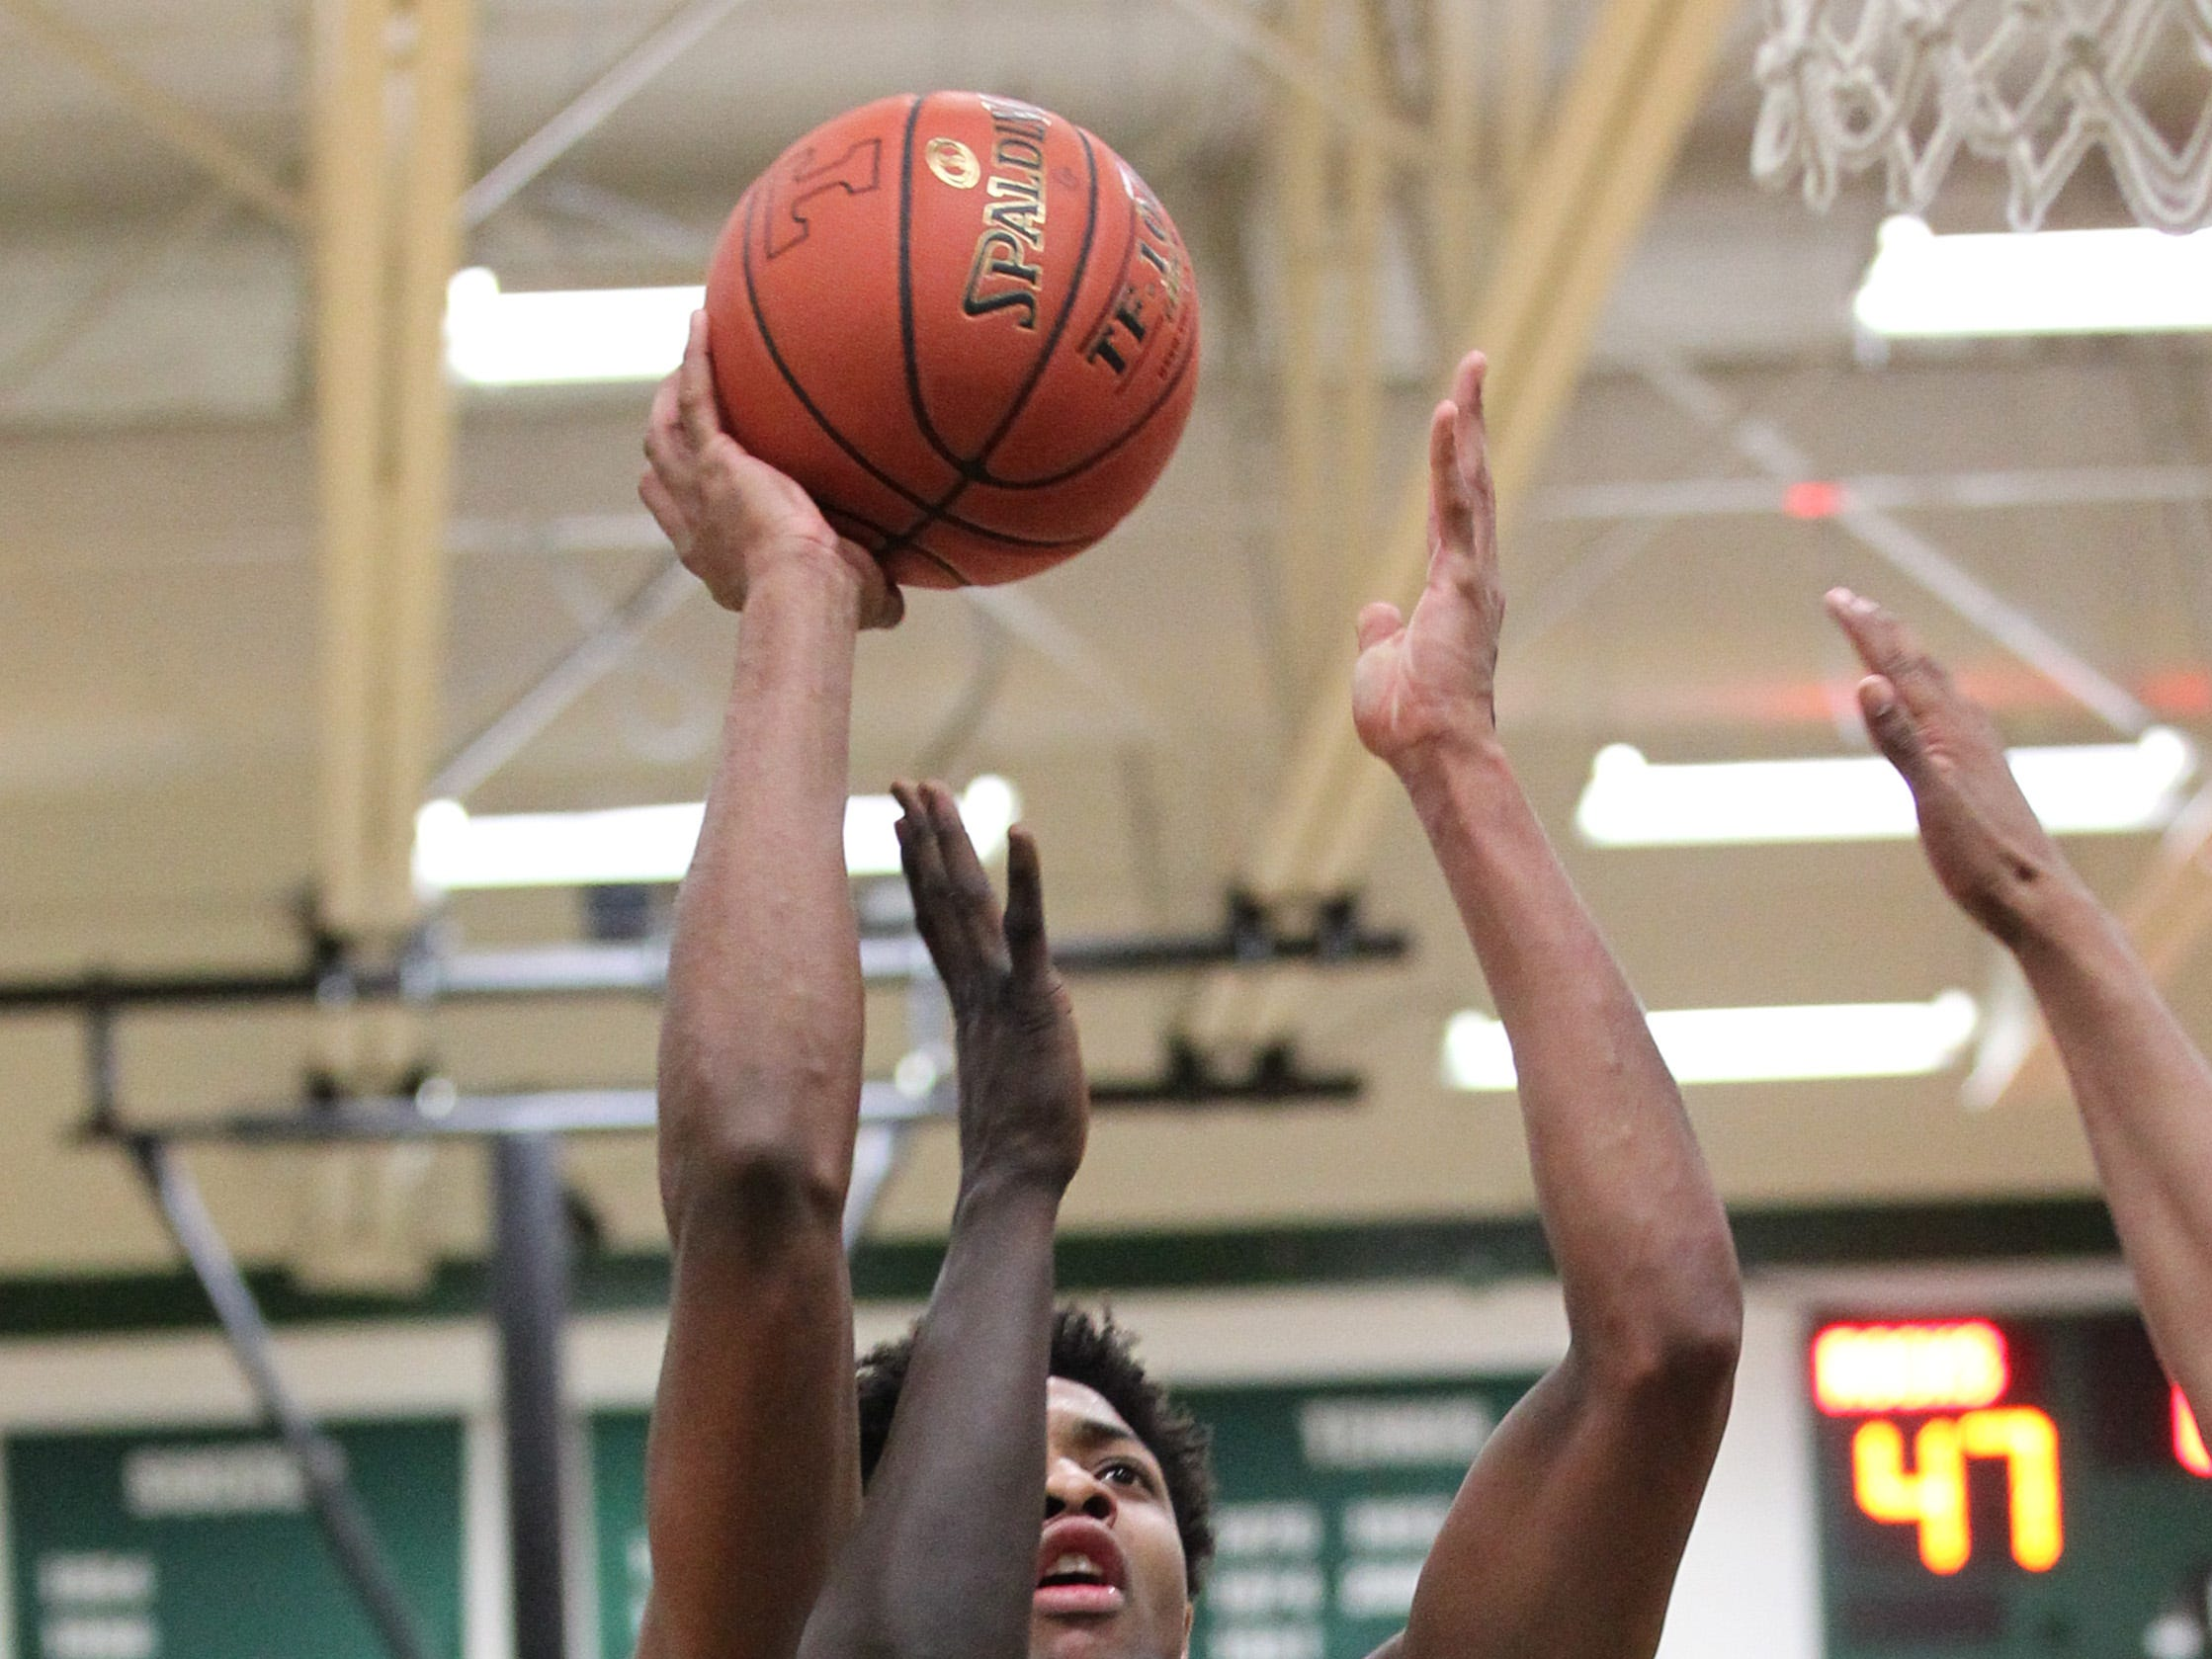 Trinity High School's David Johnson (13) fights to get his shot off under pressure from Waggener High School's Jaago Kalakon (10) during the second half of play at Trinity High School on Jan. 11, 2019.